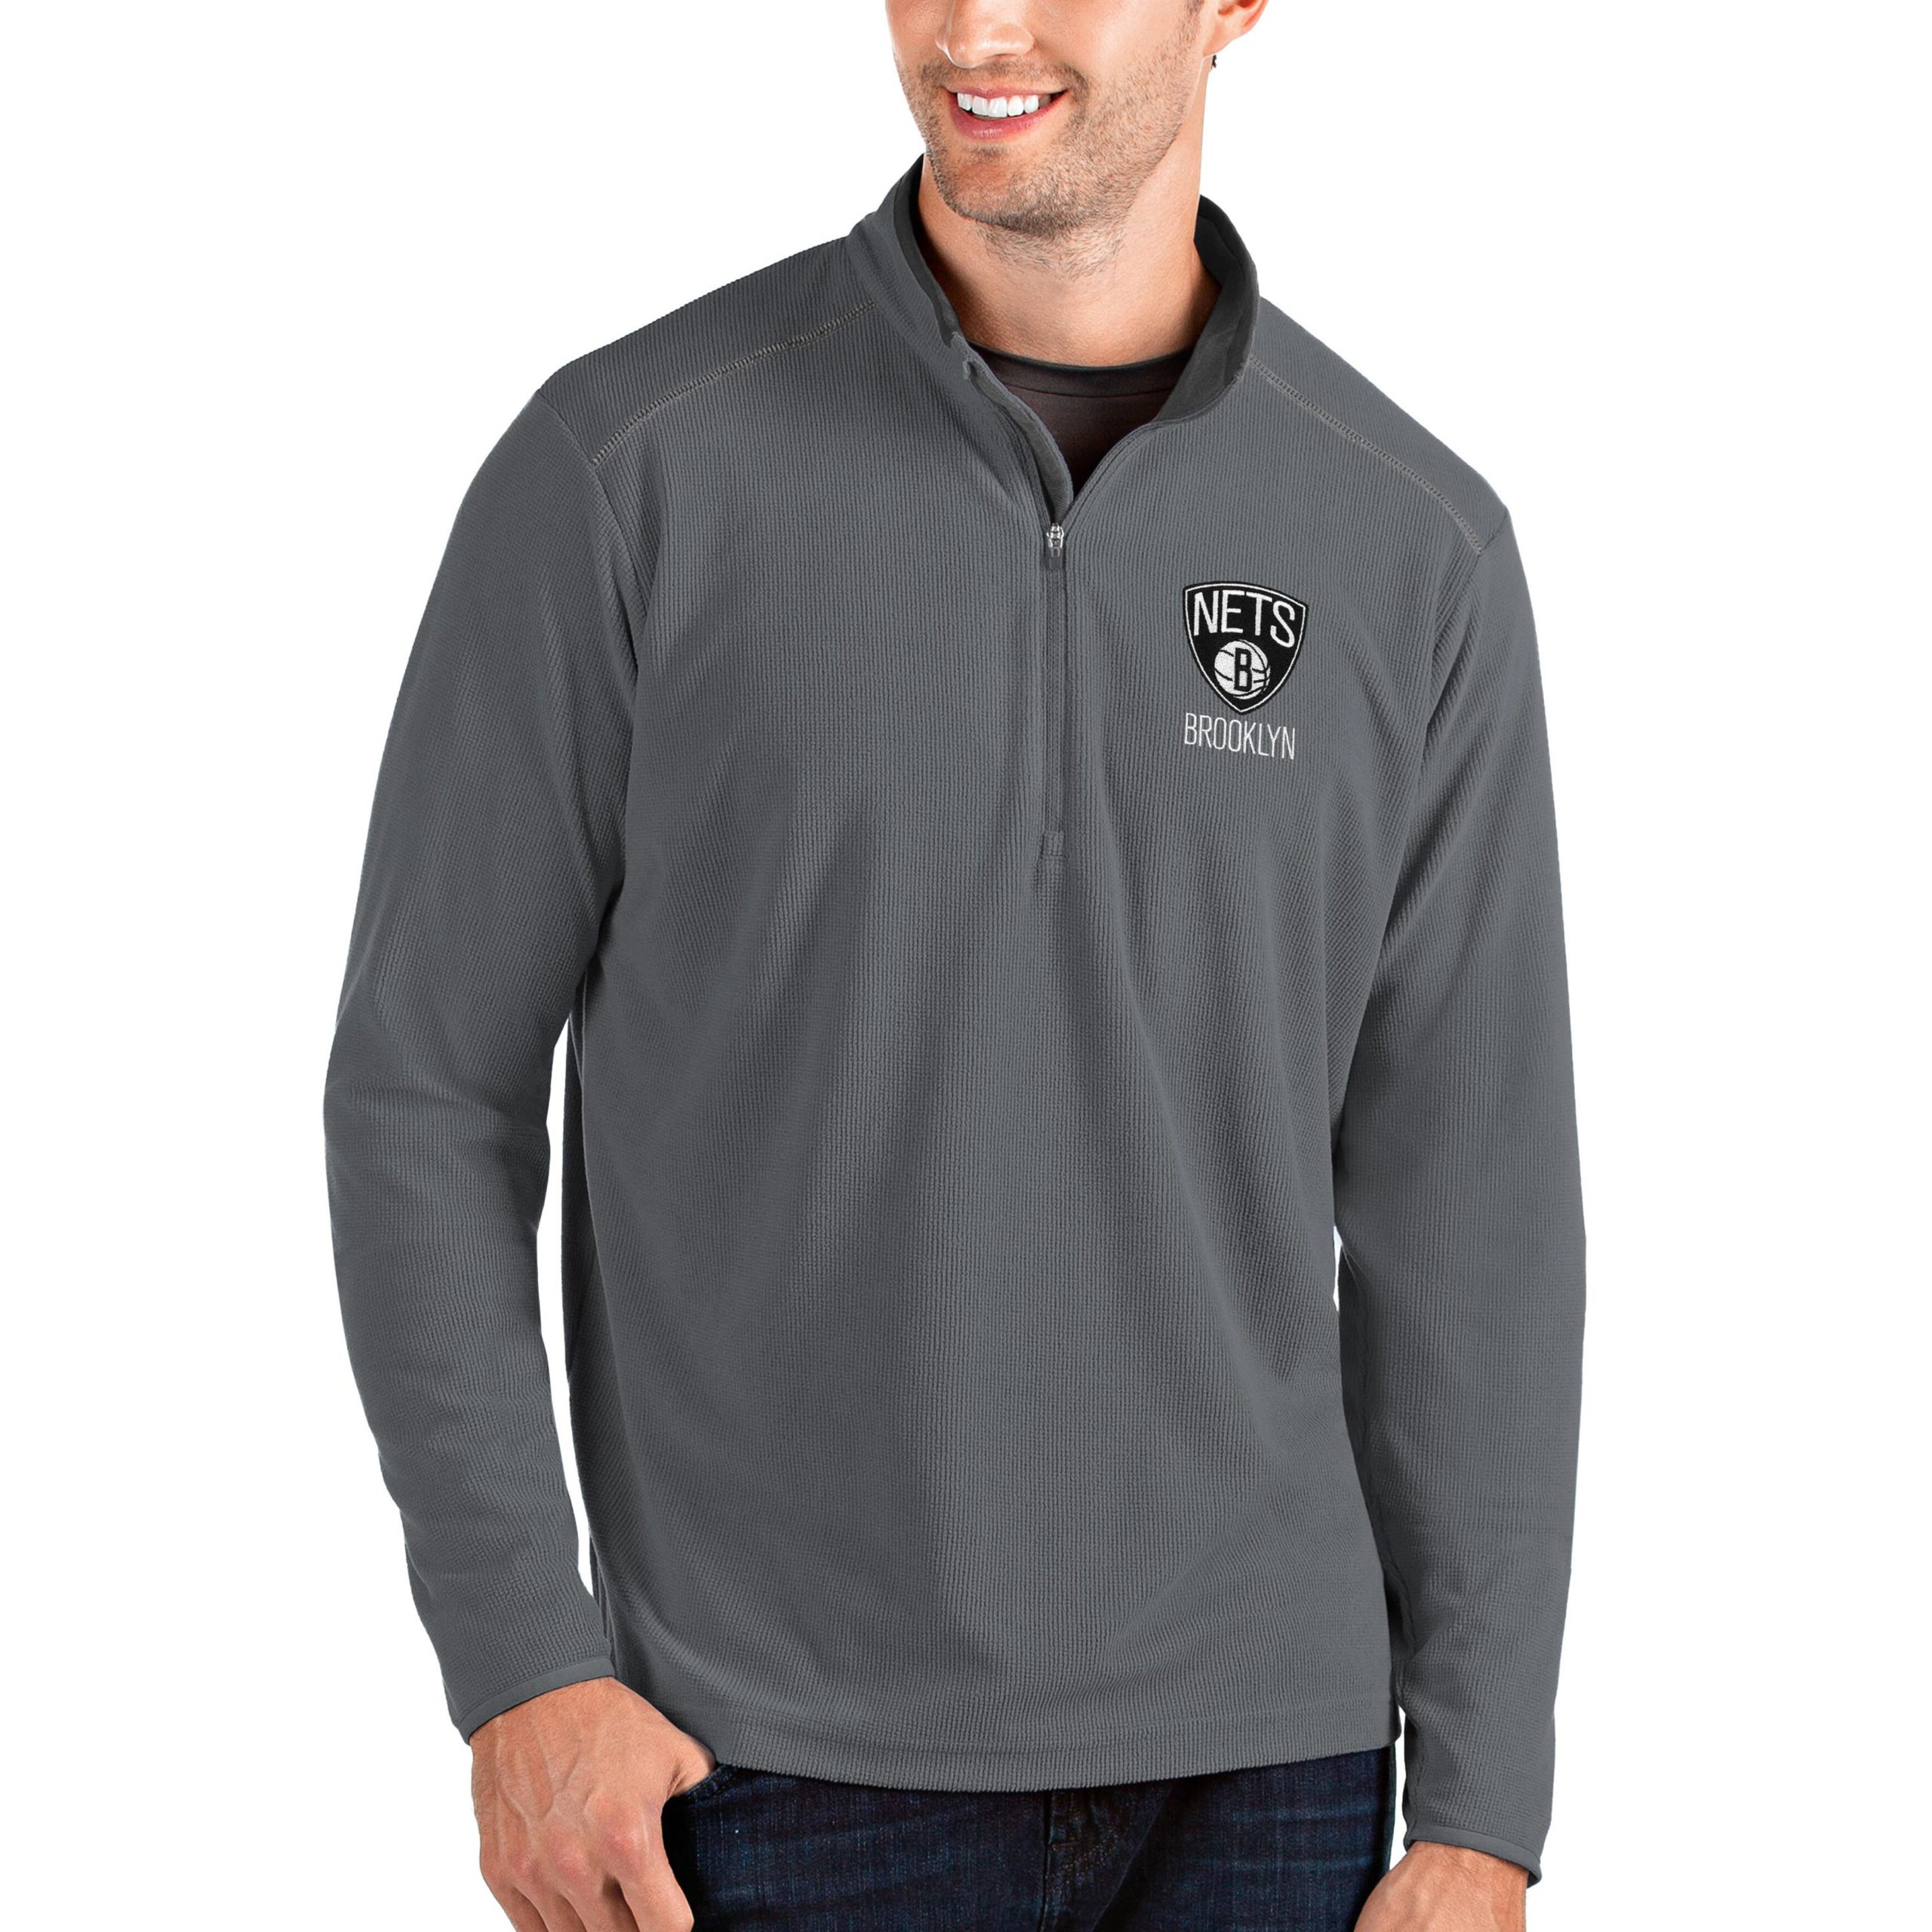 Brooklyn Nets Antigua Big & Tall Glacier Quarter-Zip Pullover Jacket - Gray/Gray